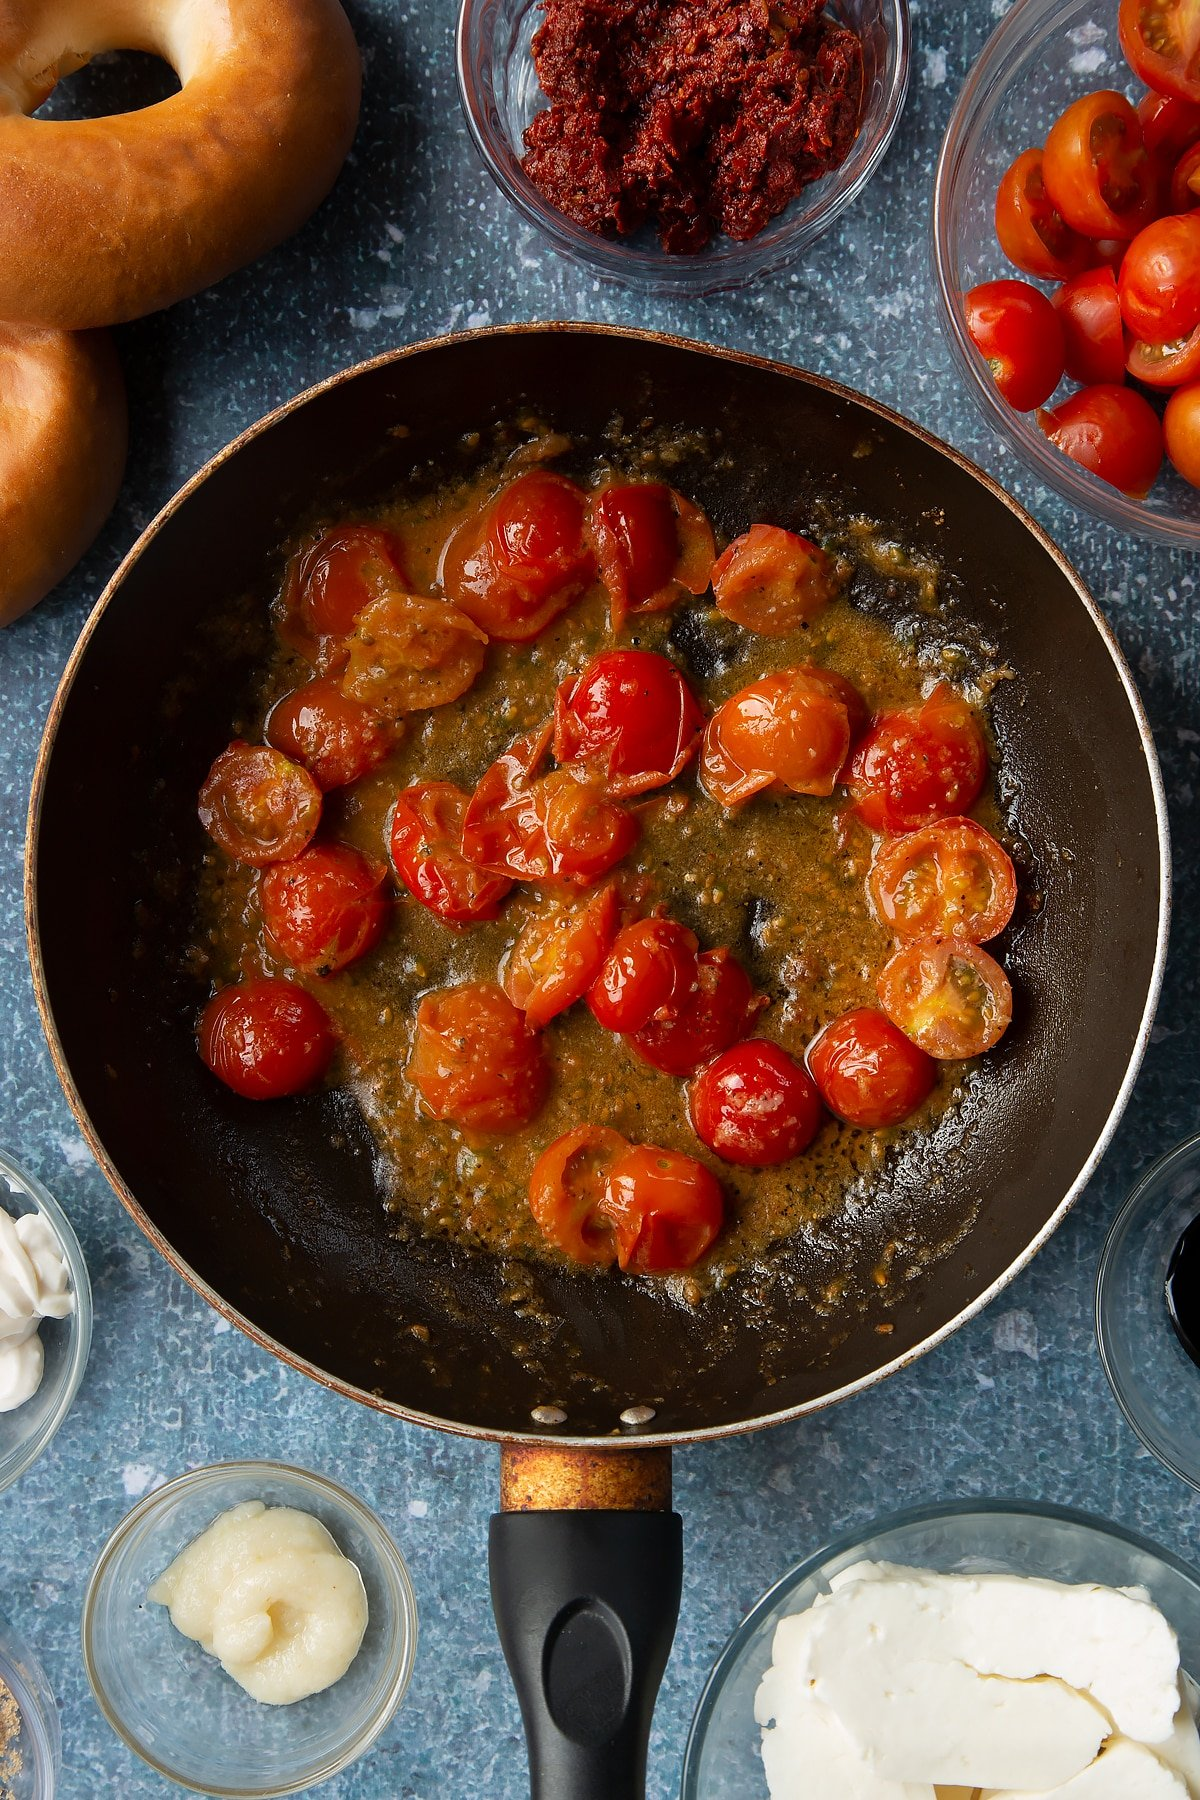 Fried down cherry tomatoes, garlic and pepper in a frying pan. Ingredients to make halloumi bagels surround the pan.